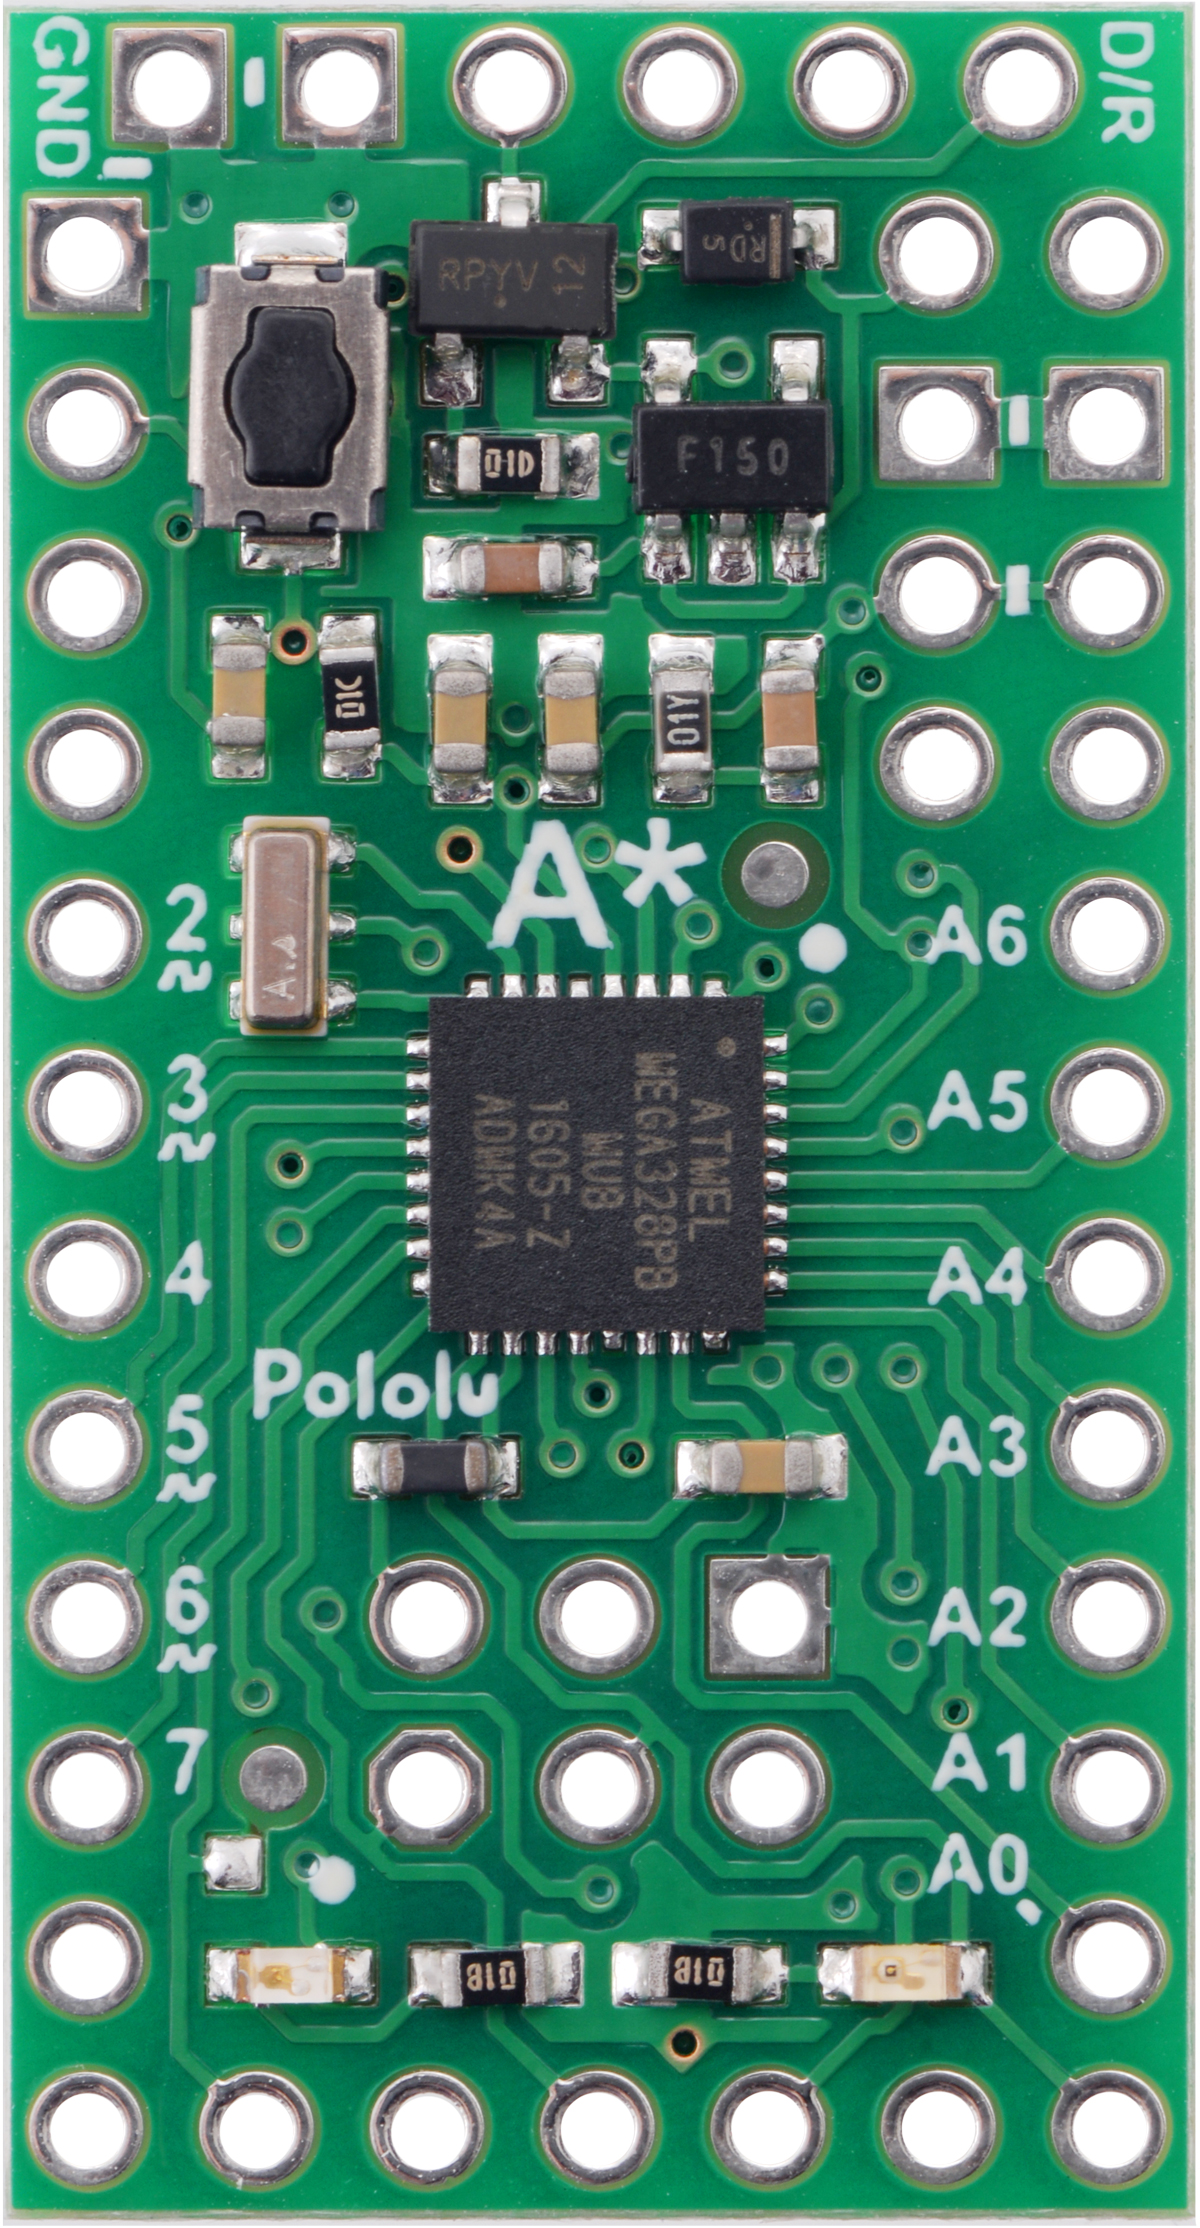 Pololu A Star 328pb Micro 5v 16mhz Atmega Programmer Usb Pcb Component Side The Board Can Be Powered Either Through To Serial Adapter Connected Its Header Or From Source Up 15 V On Bat Pin